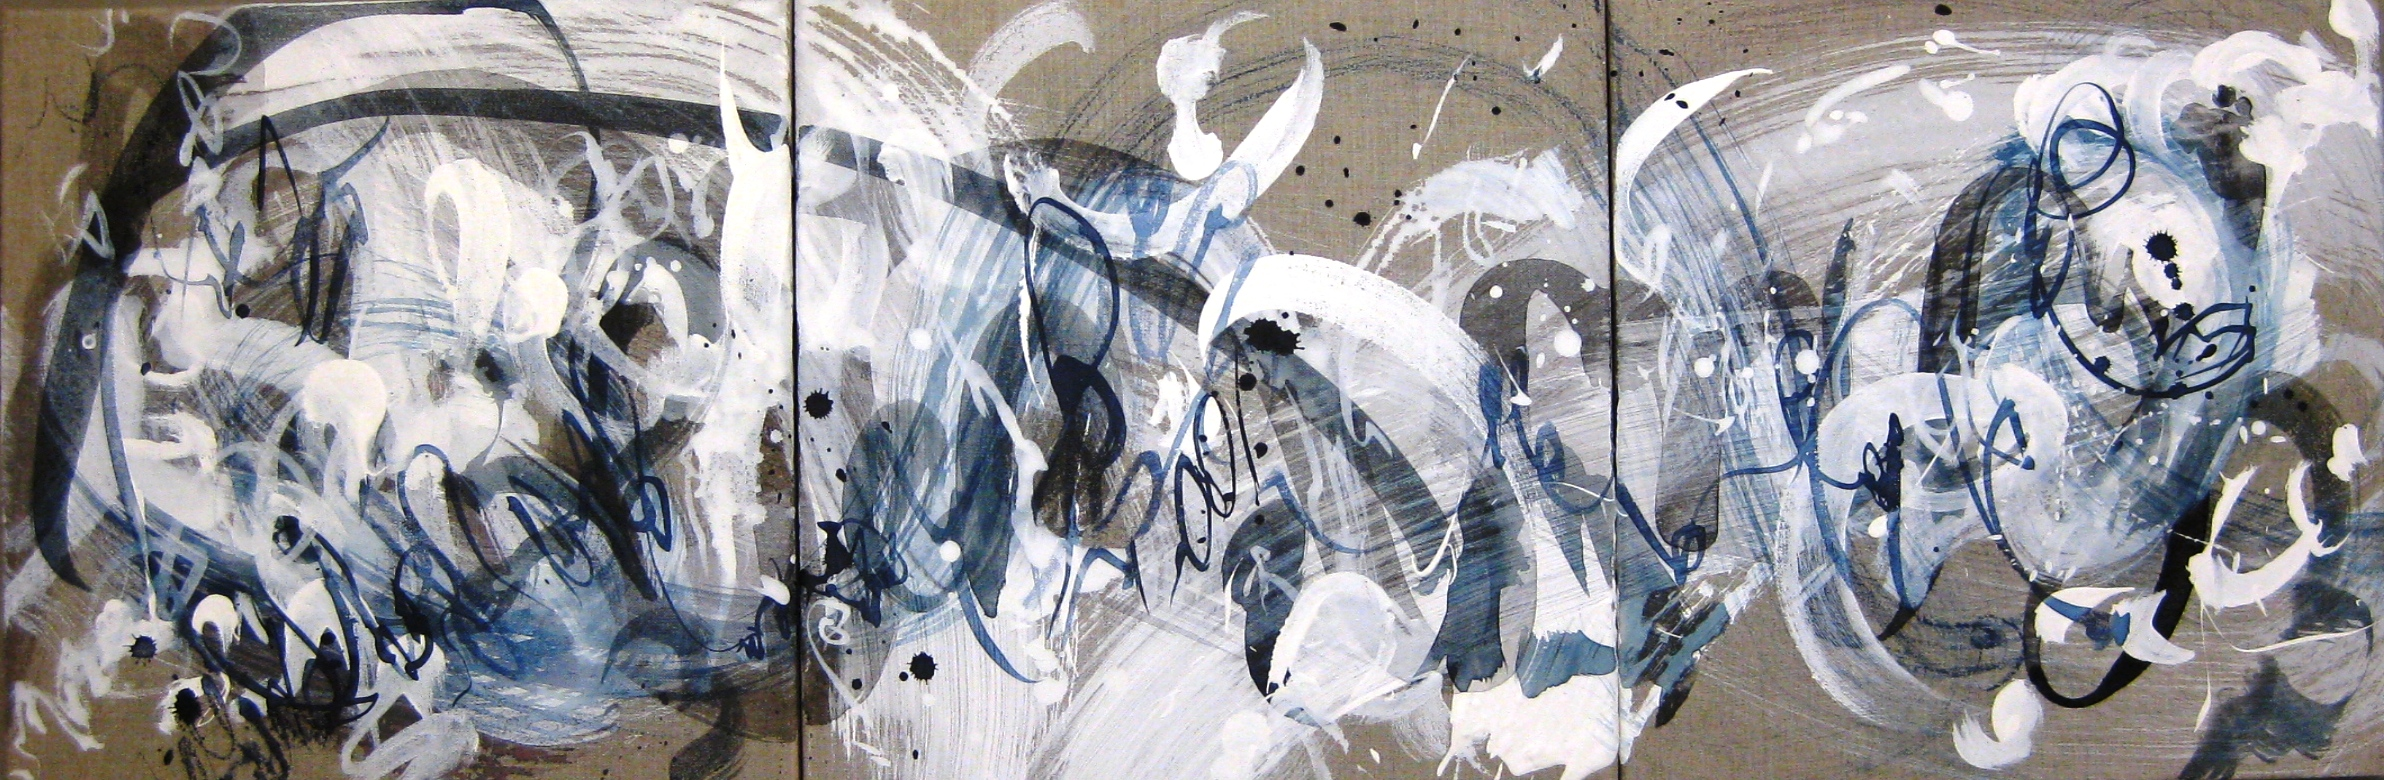 Caroline Banks Art - Impermanence (triptych) - Gesso and ink on natural linen canvas